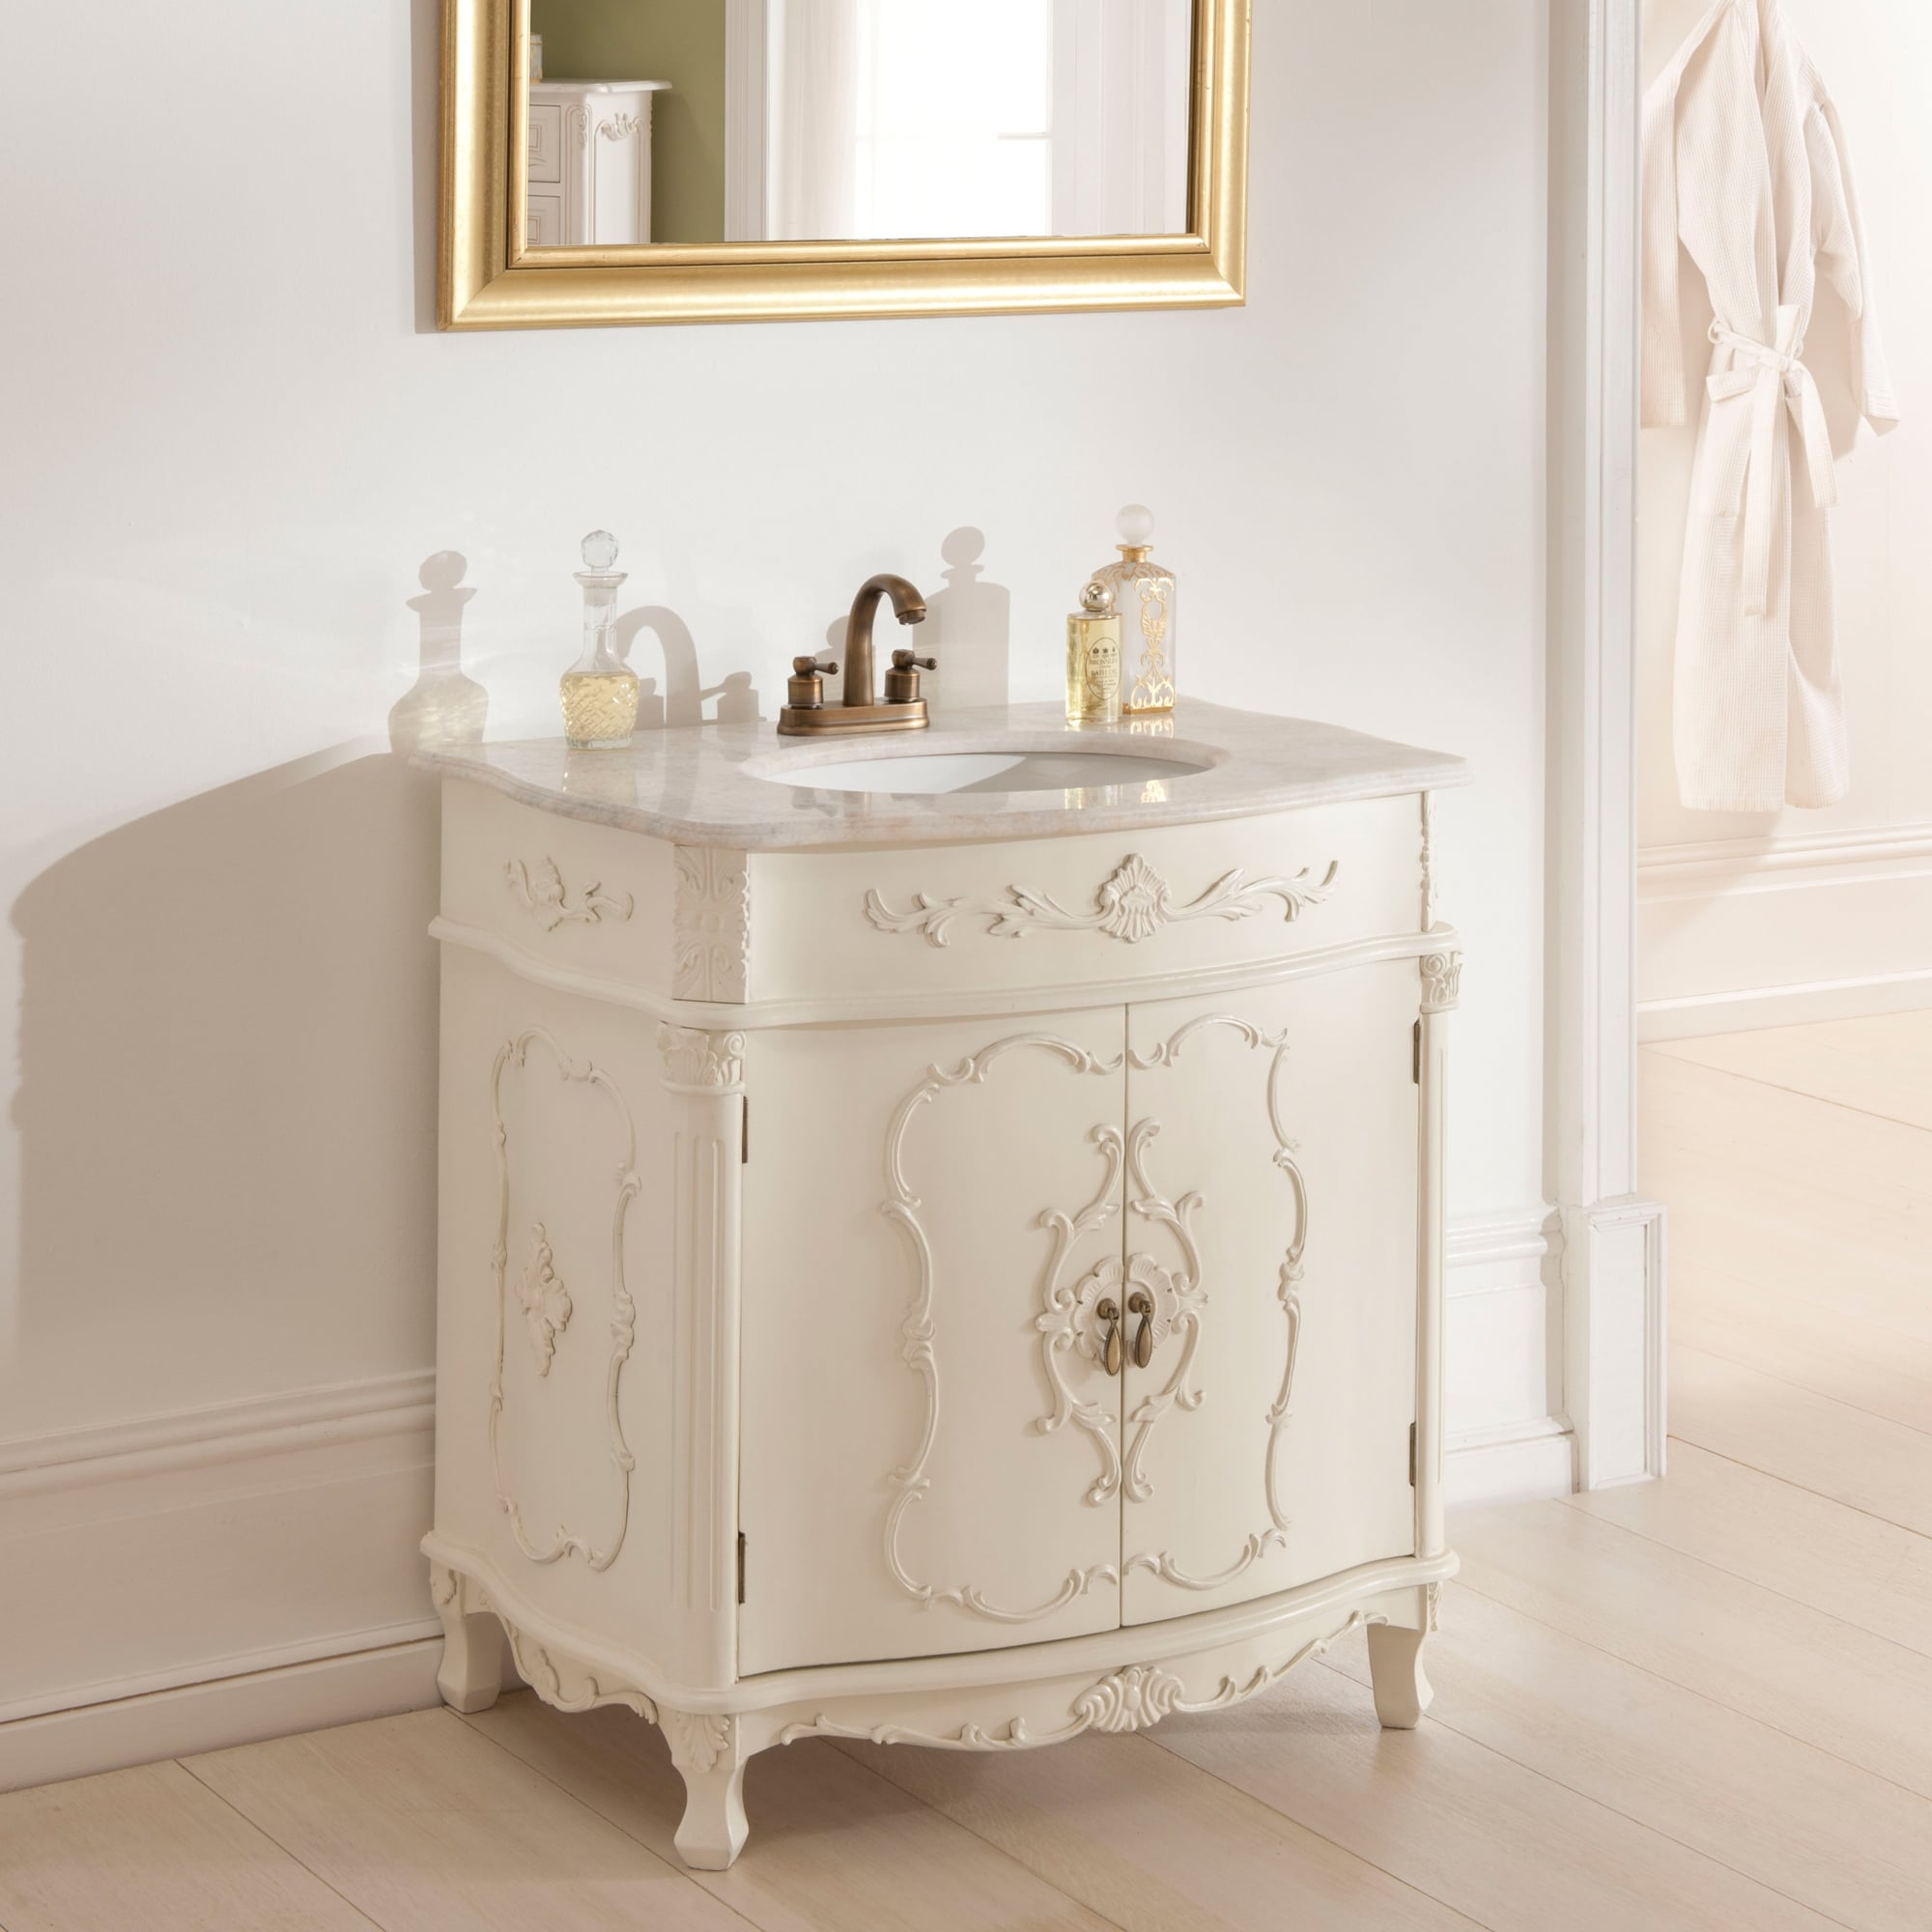 Antique french vanity unit french bathroom furniture for Antique bathroom vanity units